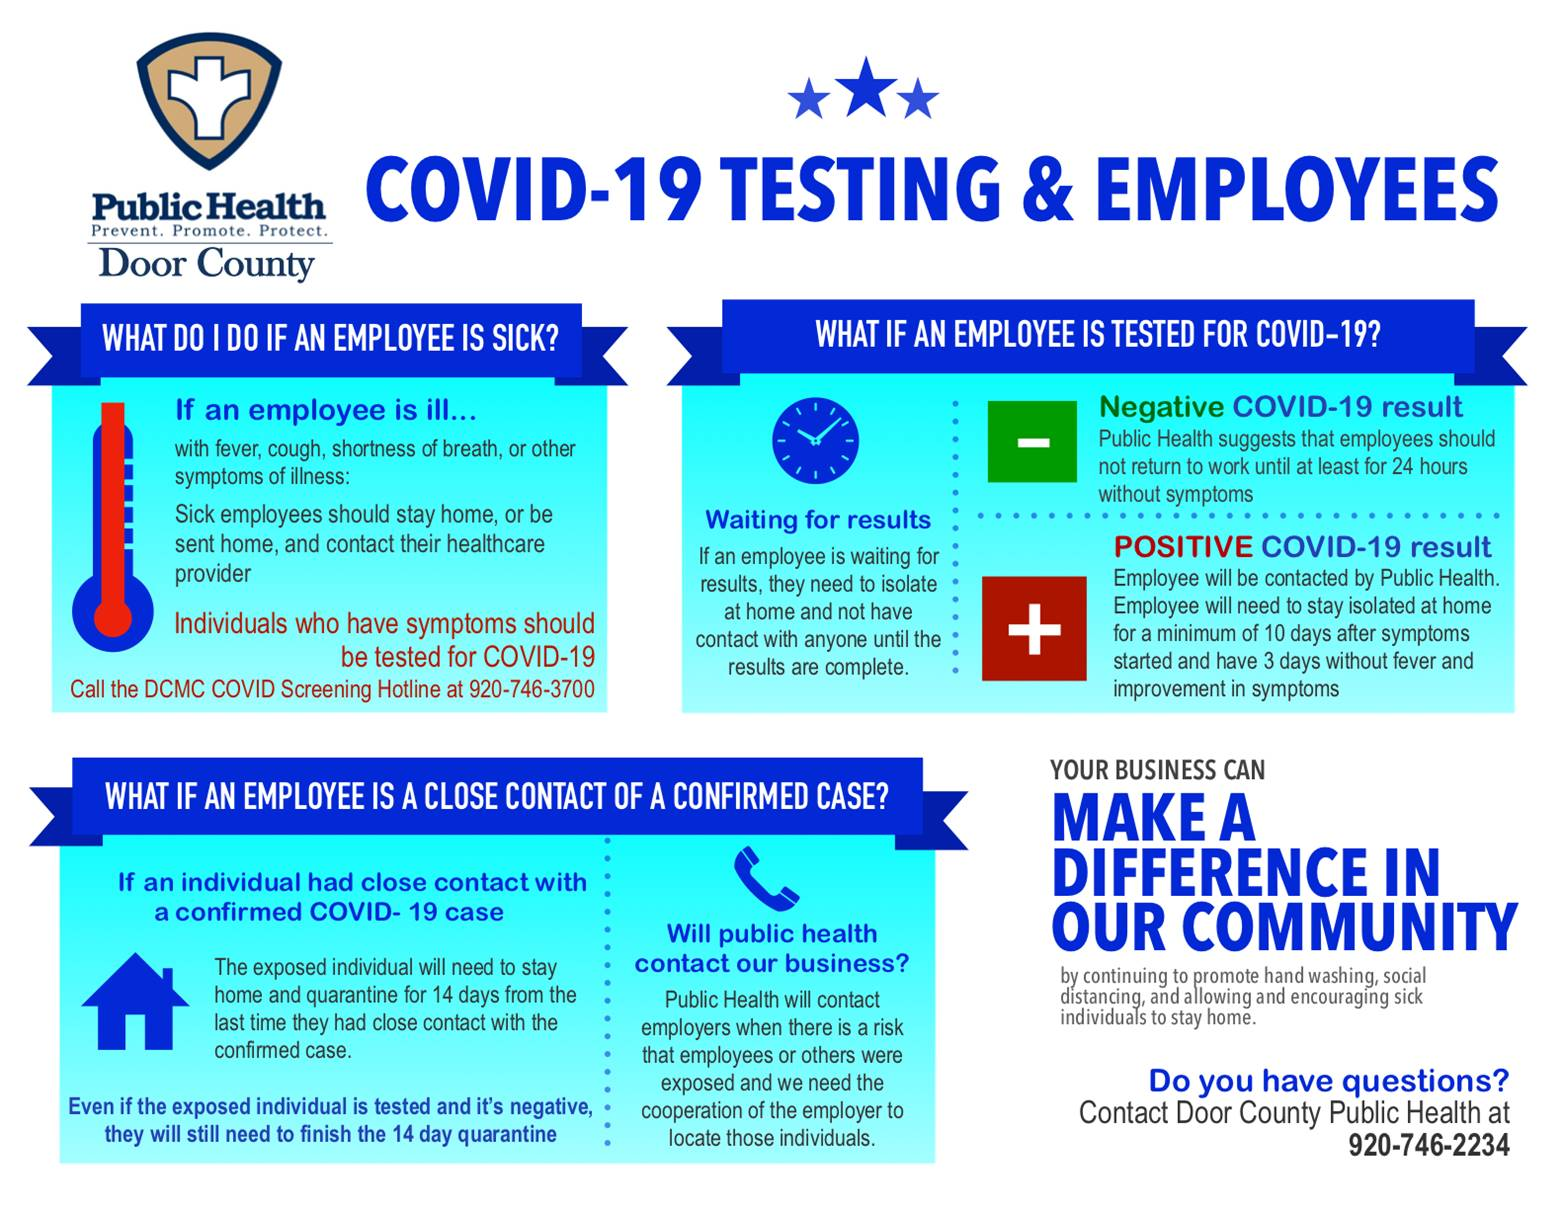 COVID TESTING AND EMPLOYEES